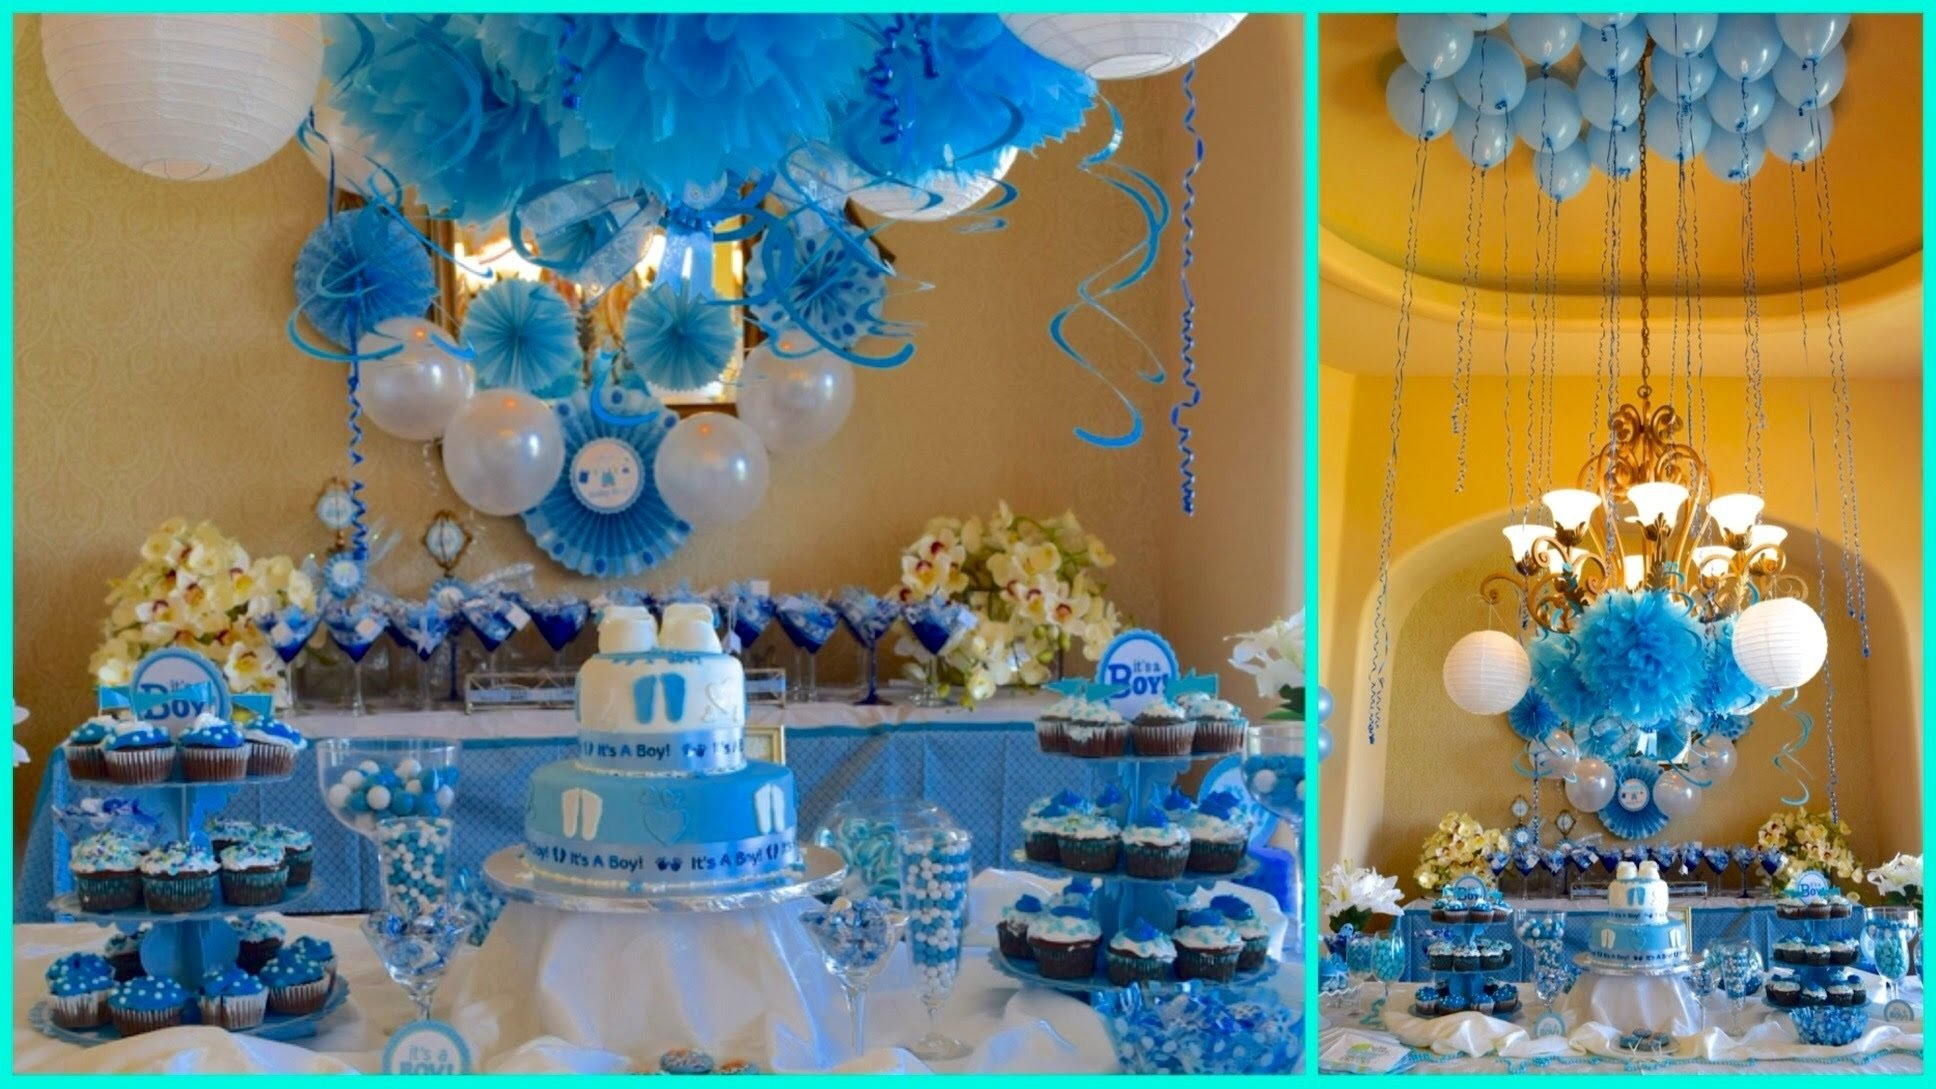 10 Great Ideas For Baby Boy Shower baby shower ideas for boy blue theme youtube 27 2020